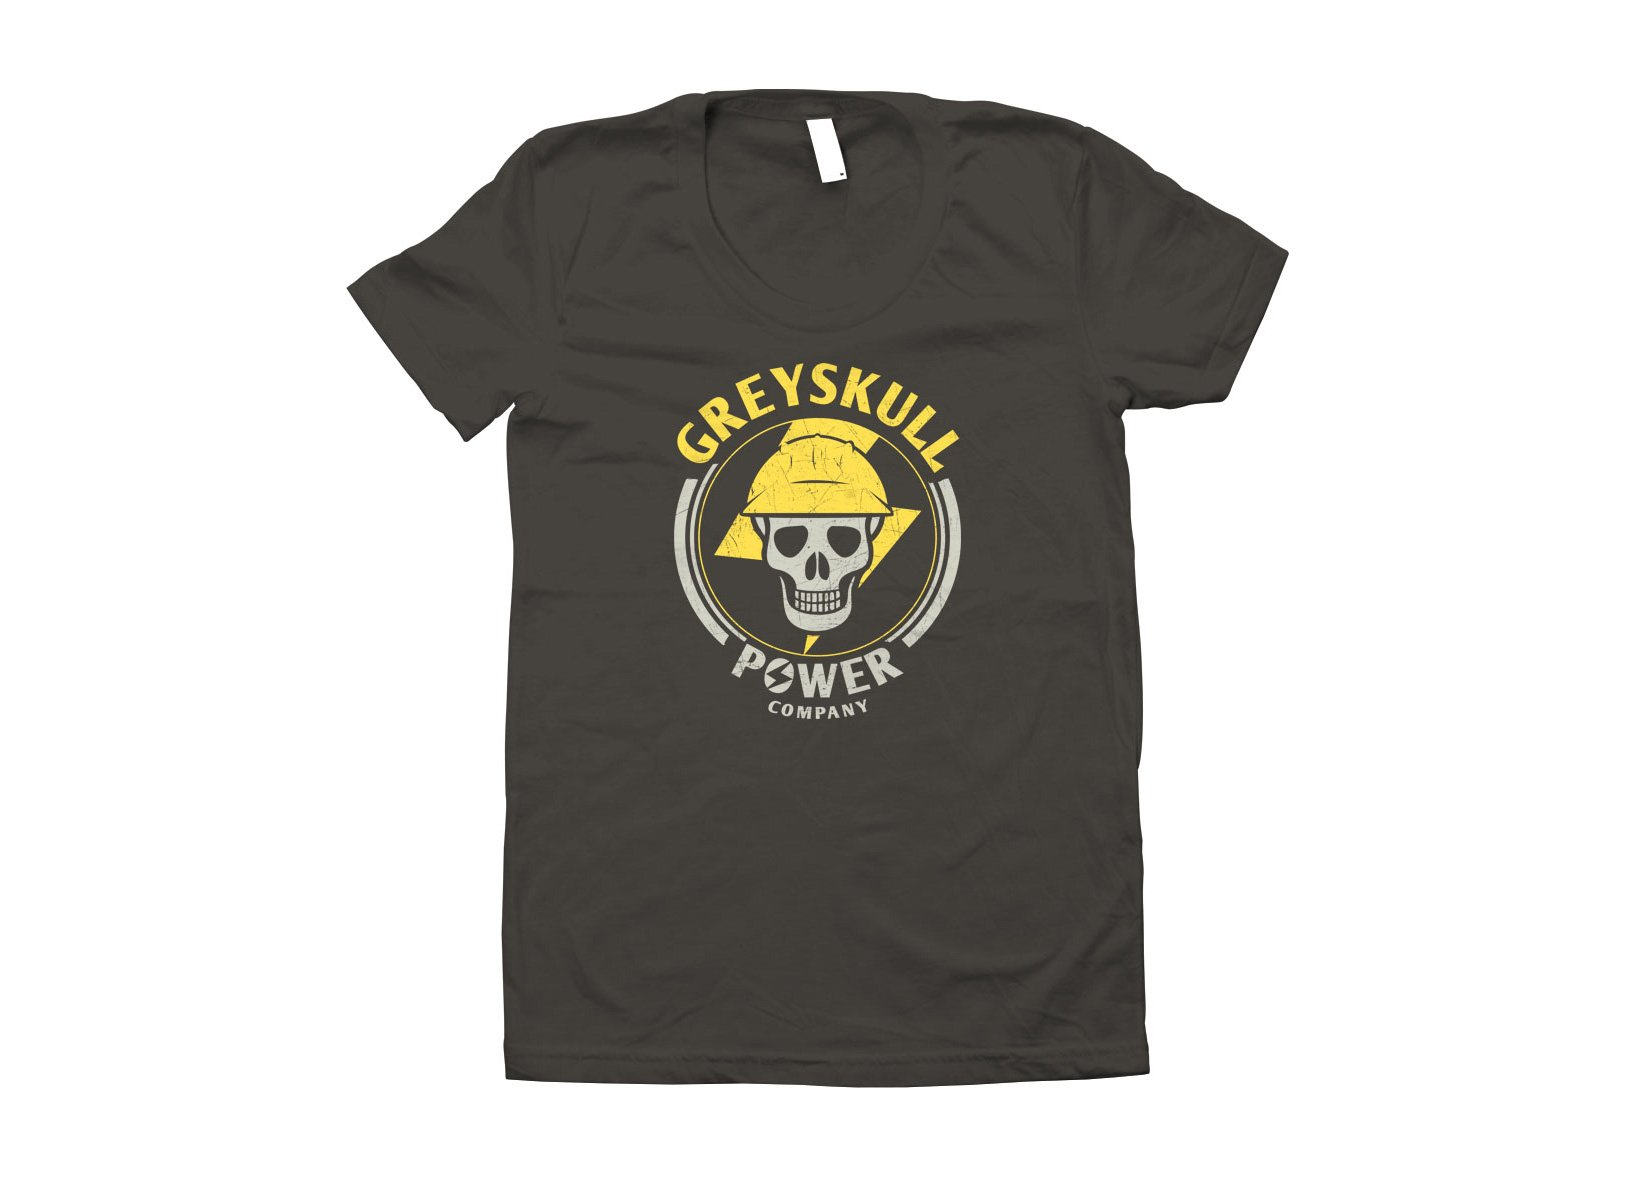 Greyskull Power Company on Juniors T-Shirt